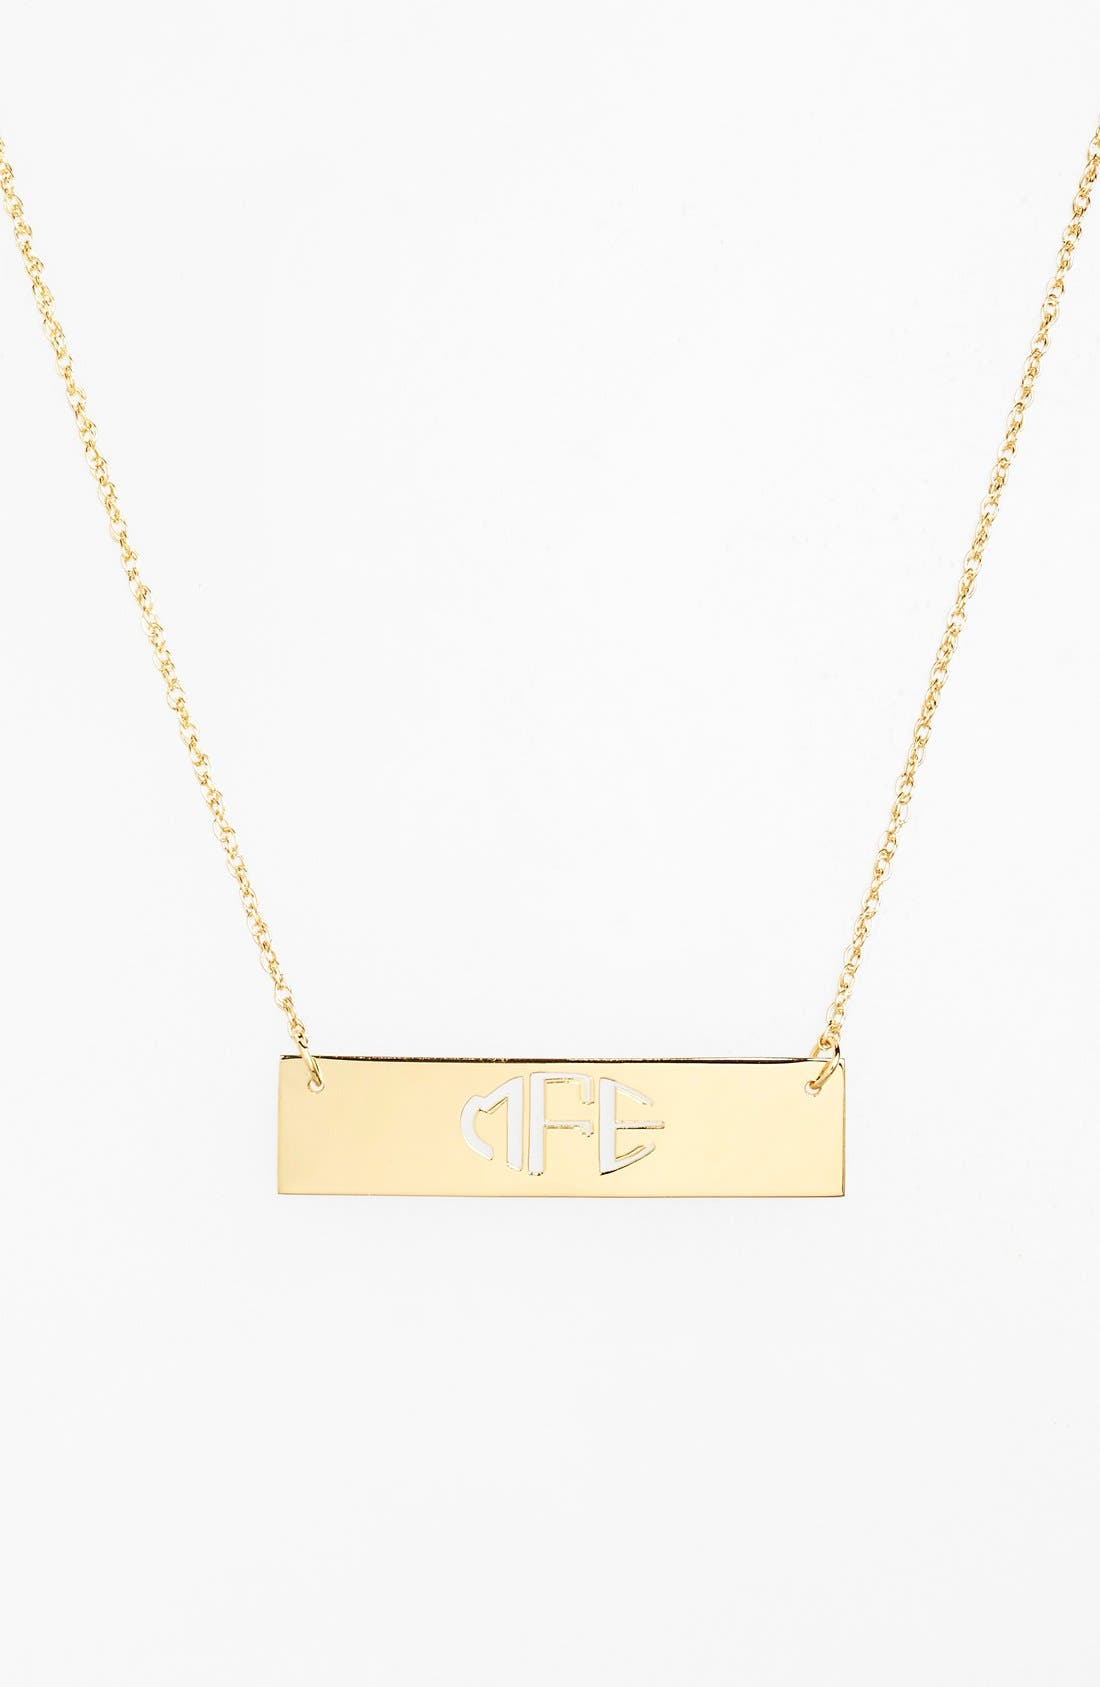 Jane Basch Designs Personalized Cutout Bar Pendant Necklace